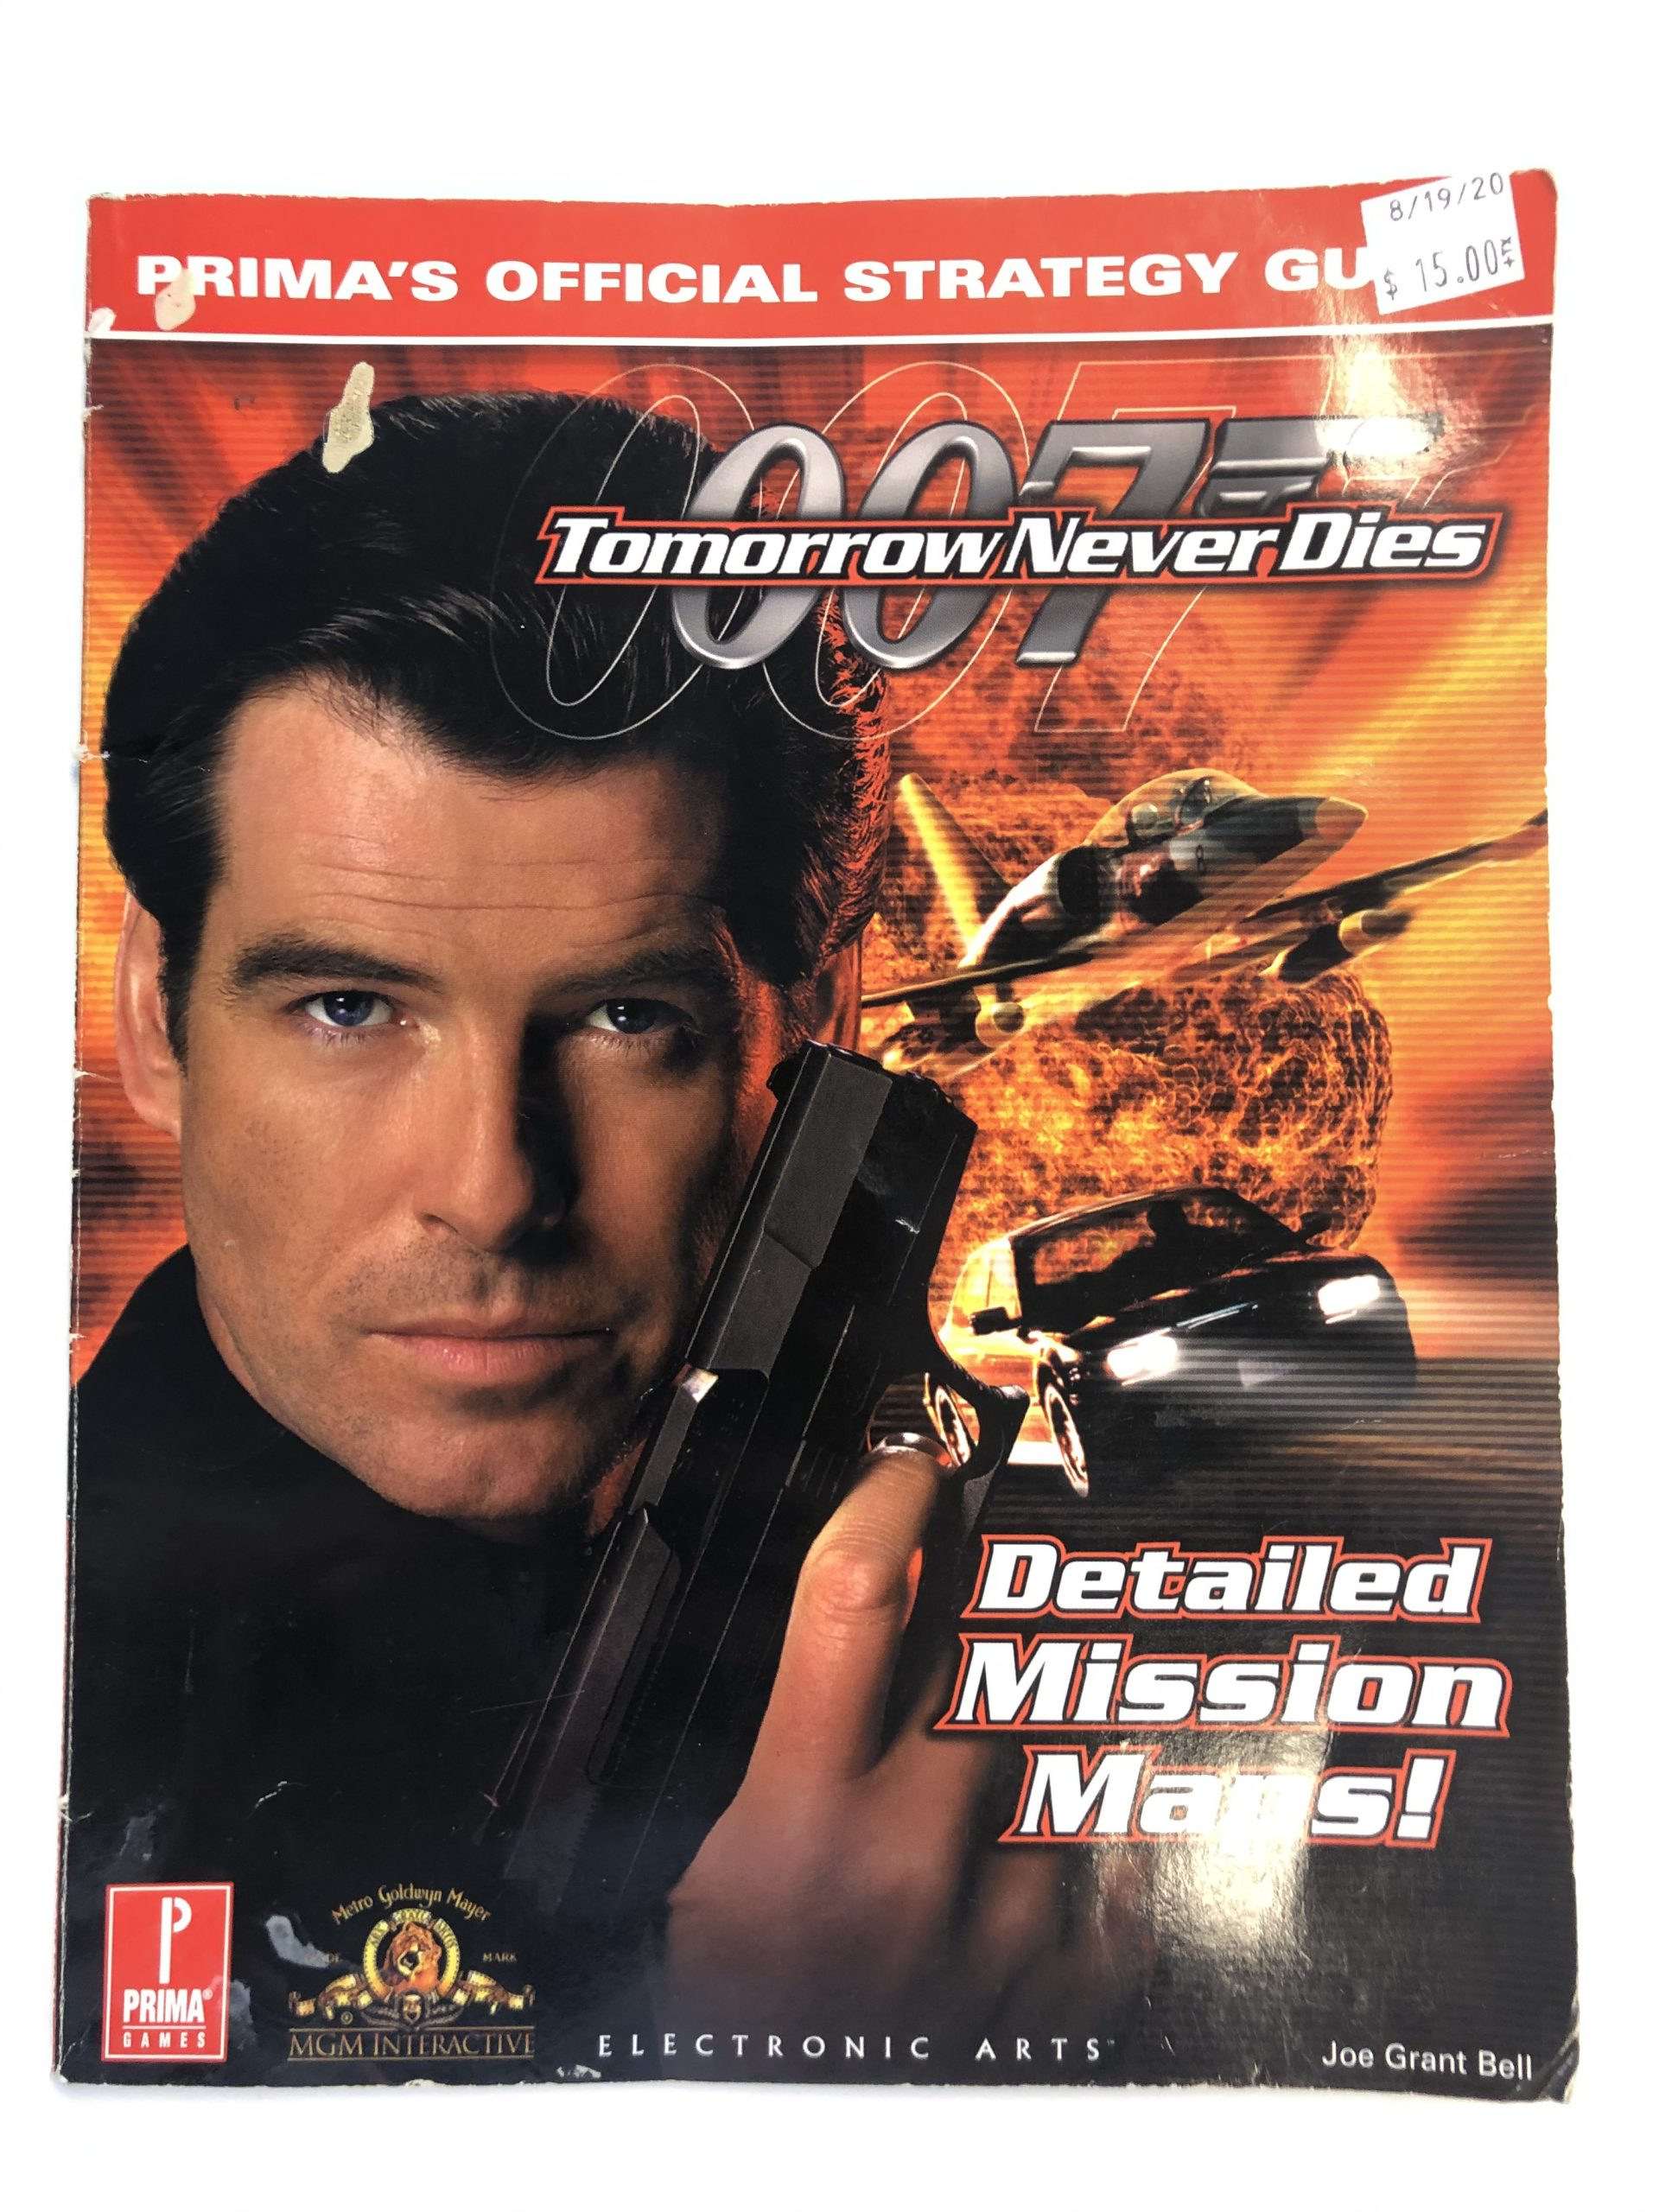 007 Tomorrow Never Dies Guide Book